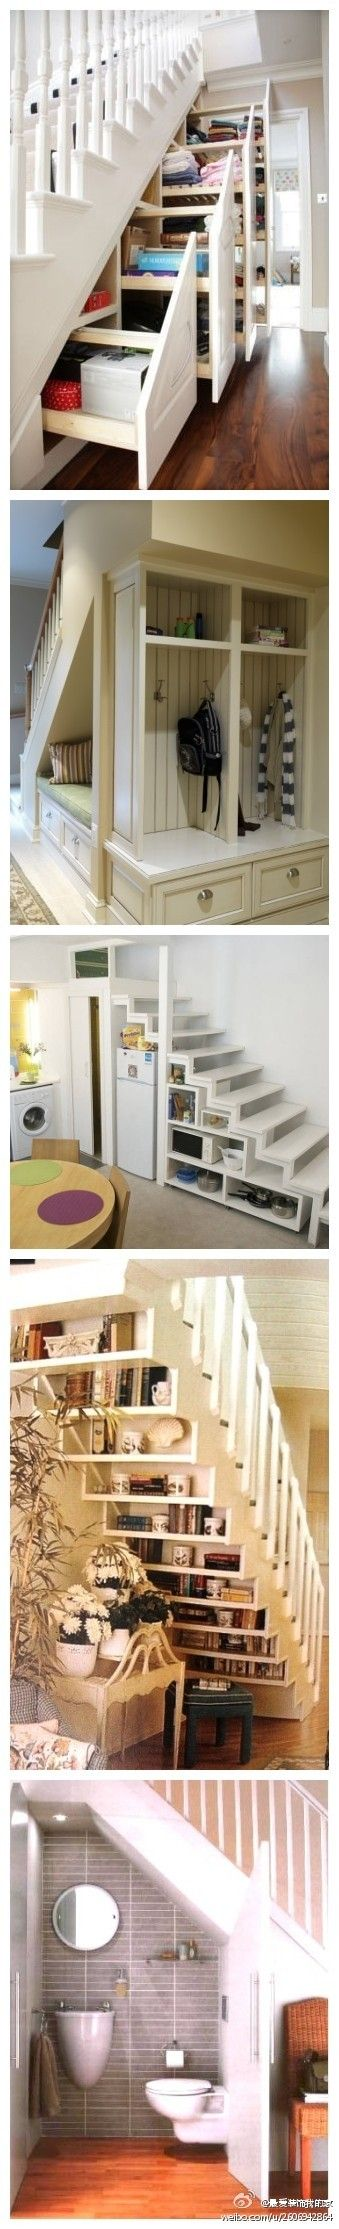 Different brilliant options for utilizing the under-the-stairs space.